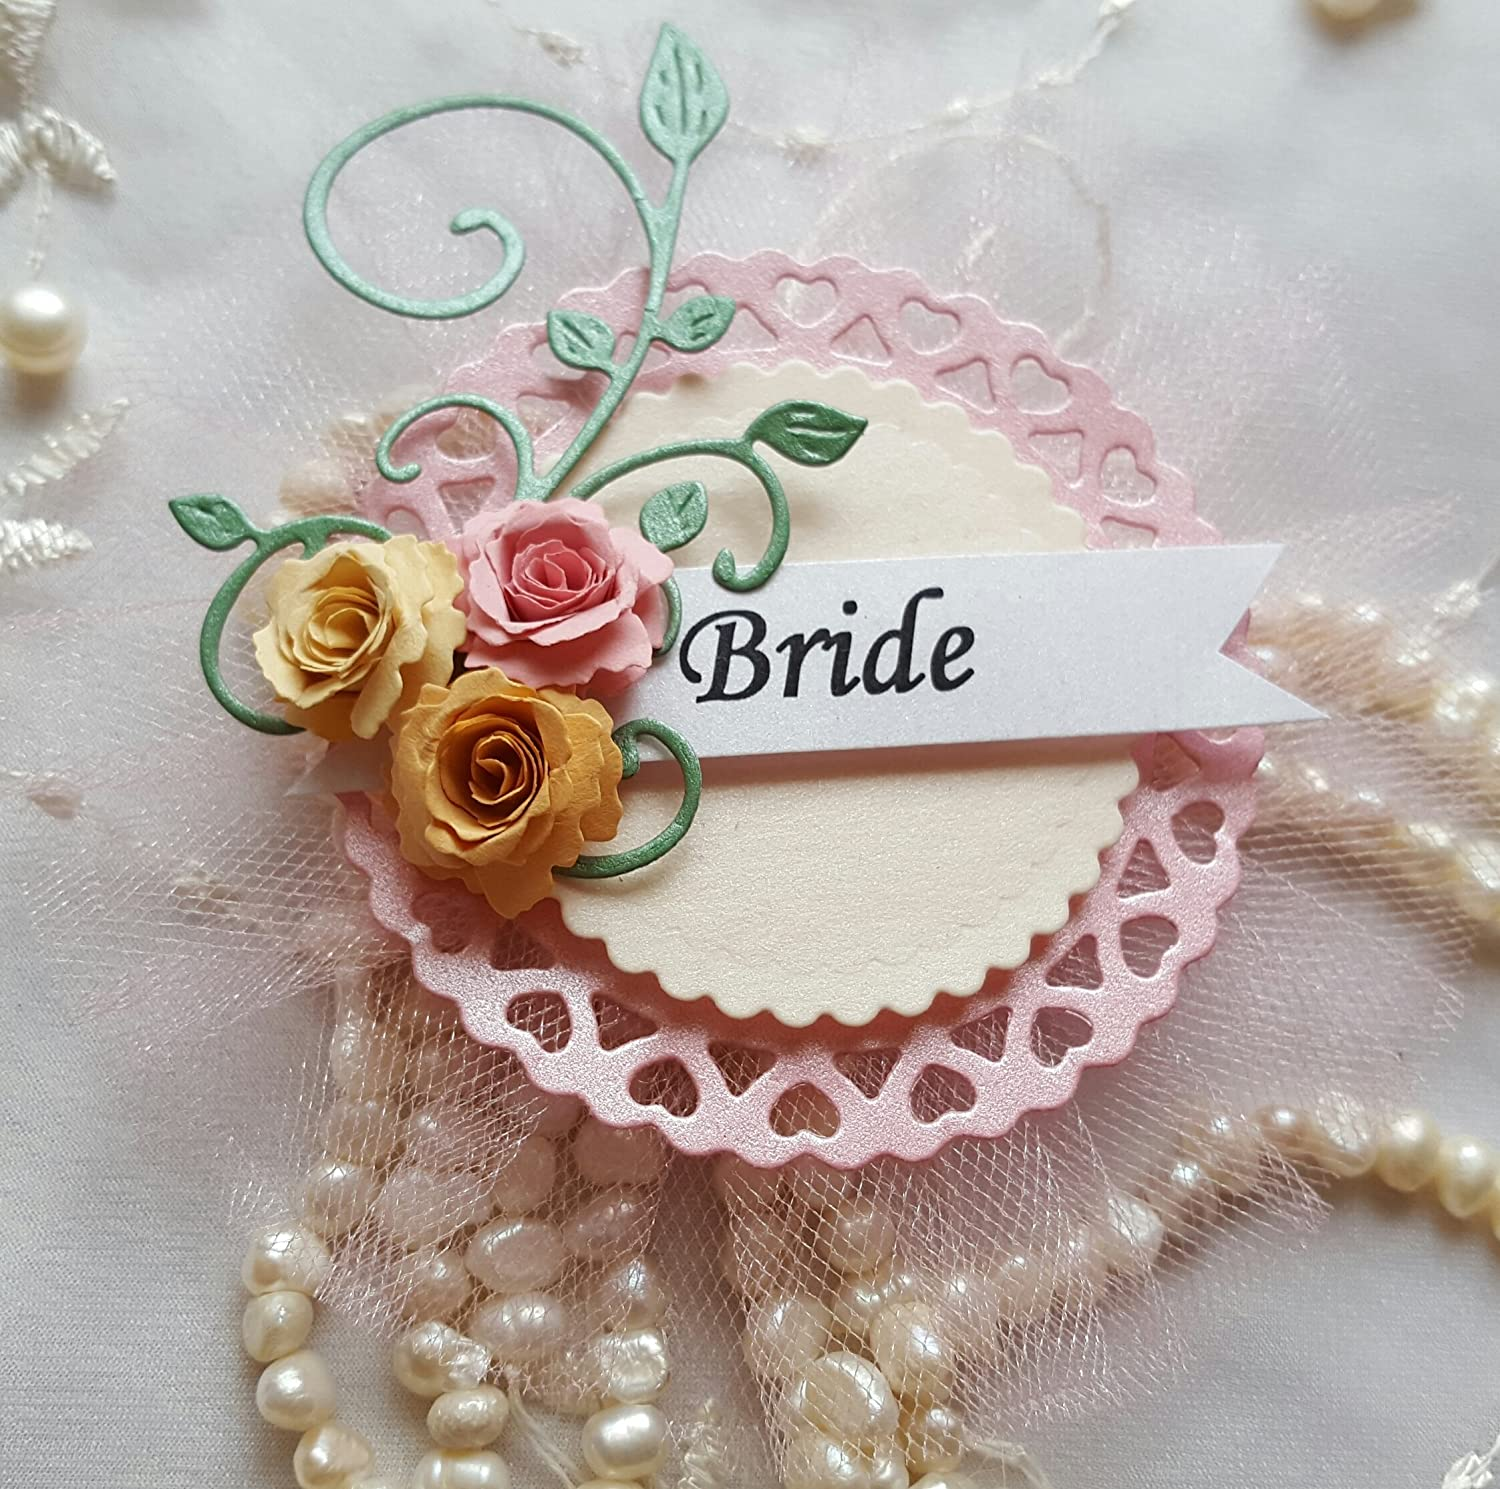 Bride to Be Badge Pin Personalized Future Mrs Corsage Bachelorette Hen Party Gift Pins Bridal Shower, Wedding, Mommy to Be Bachelorette Bridesmaid Favours Engagement Unique Gift Keepsakes